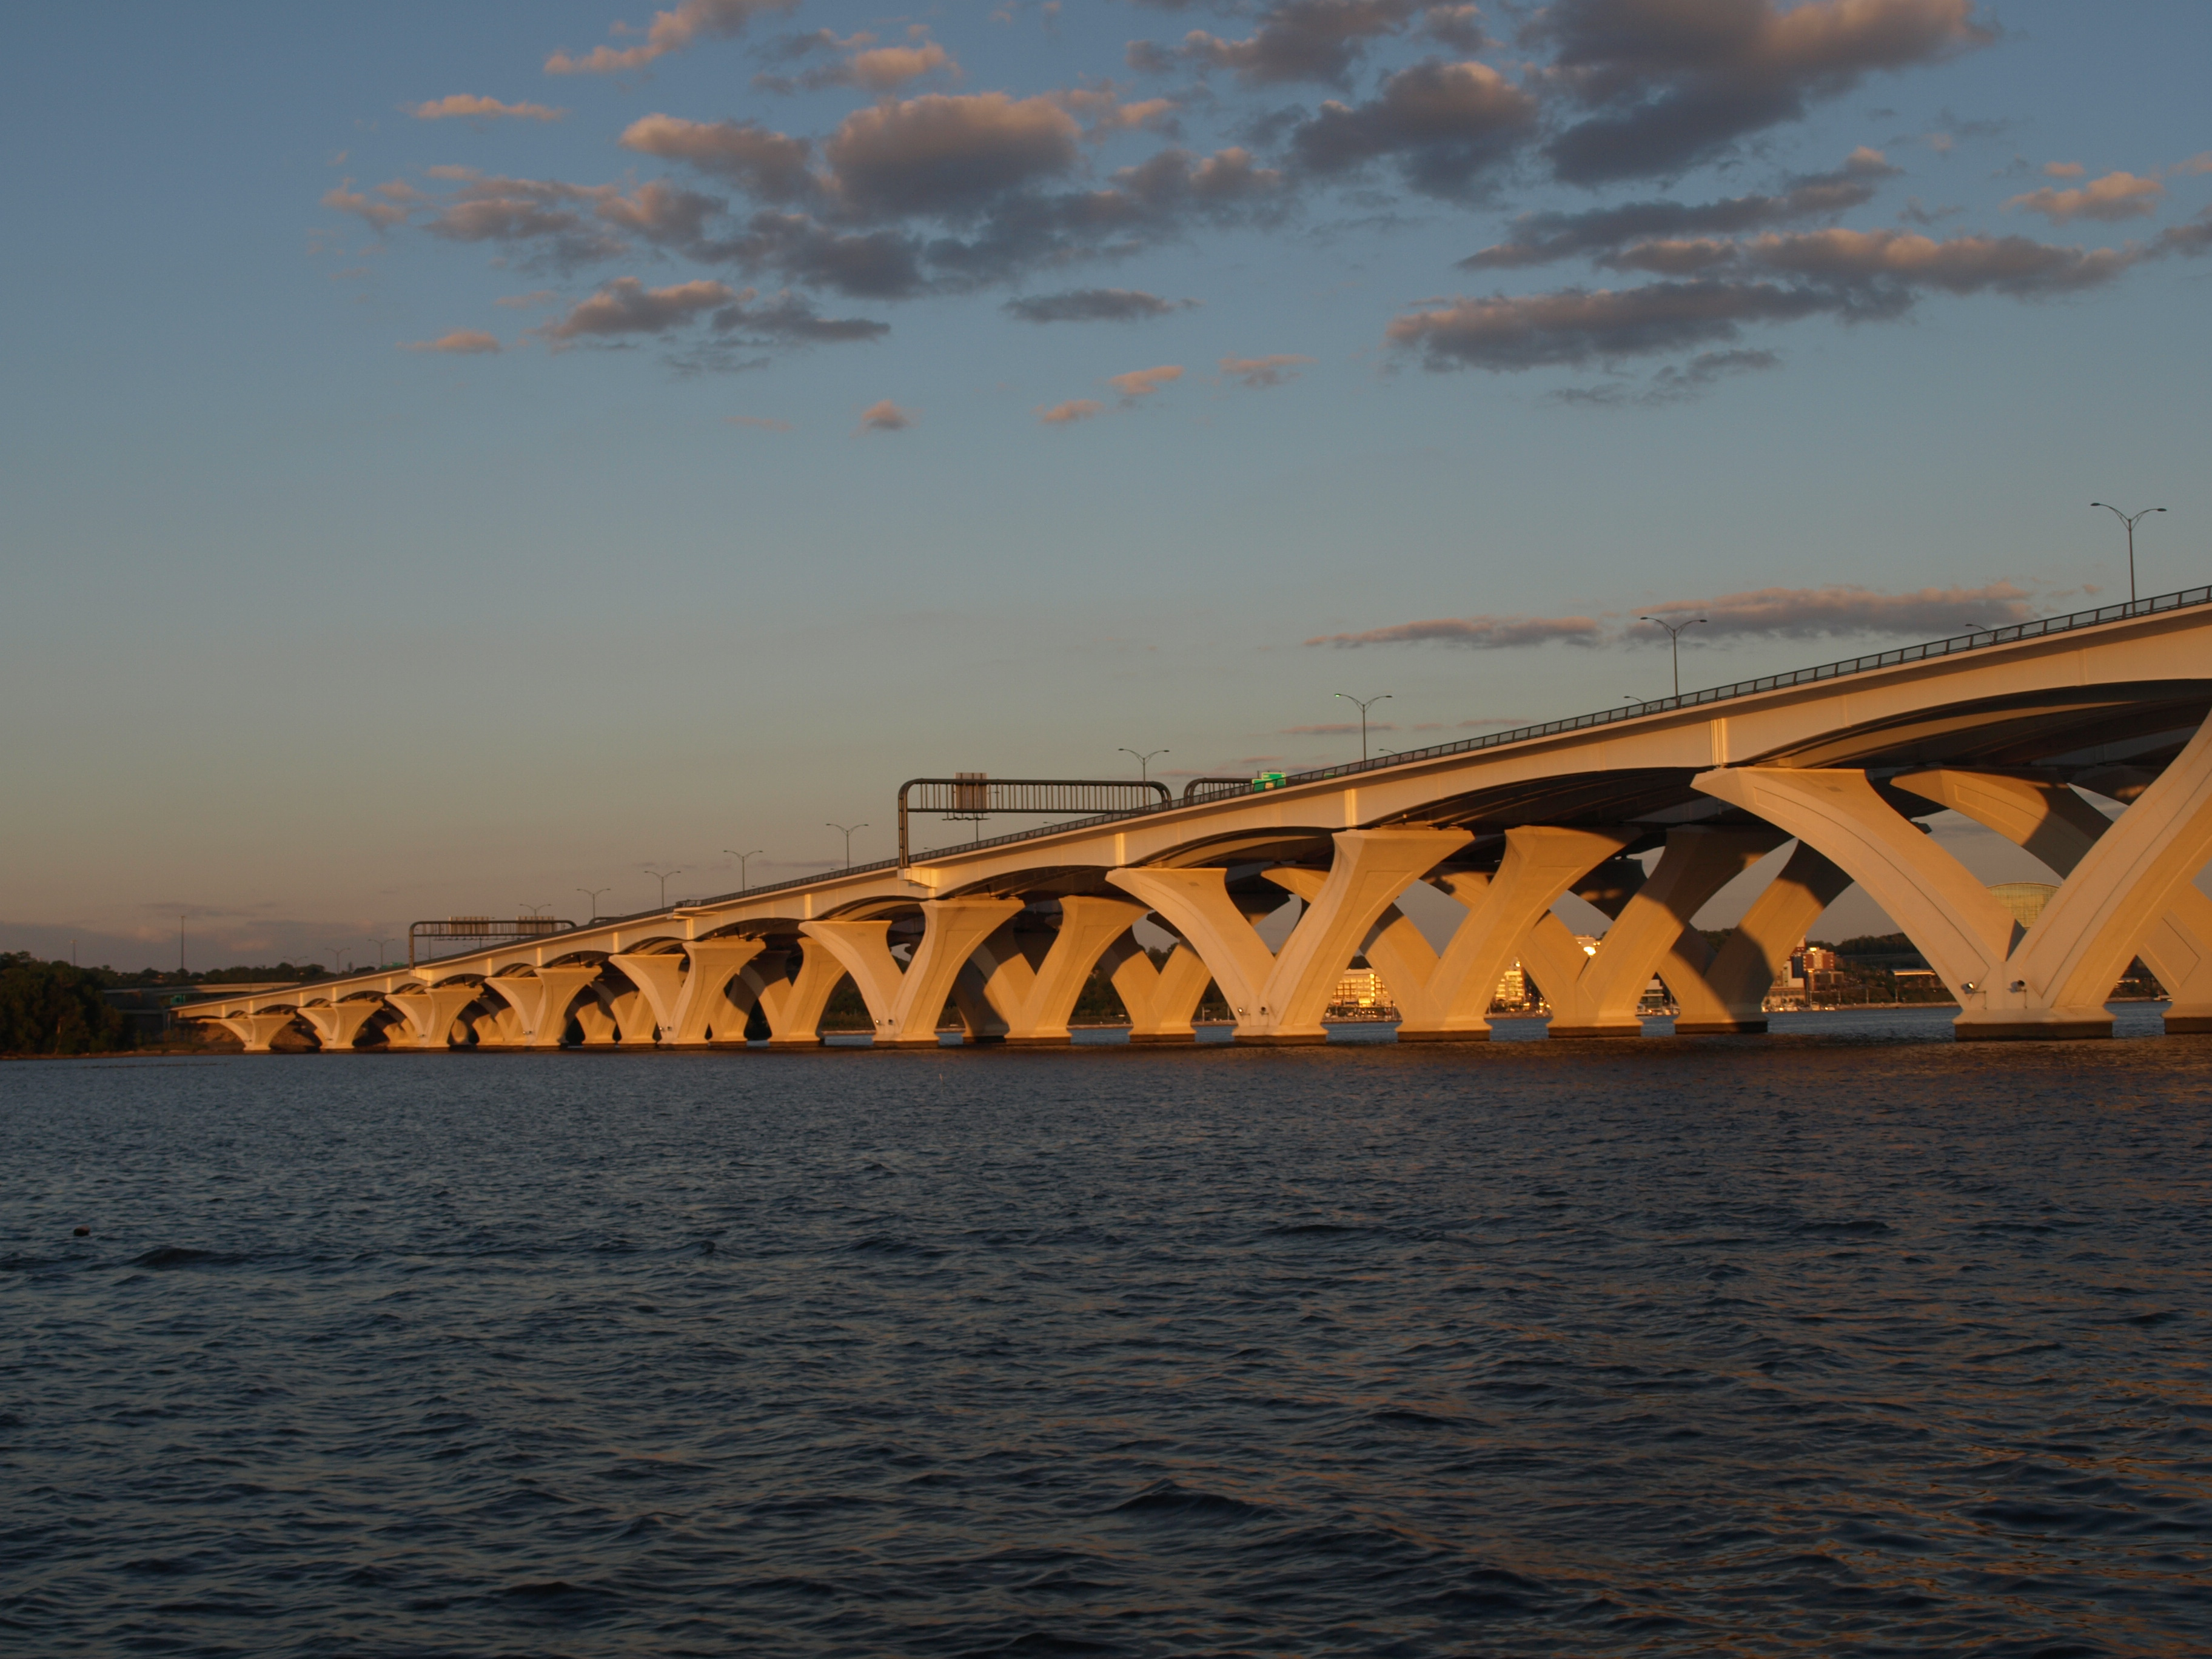 Woodrow Wilson Bridge over the Potomac River, completed by hundreds of engineers in 2006.